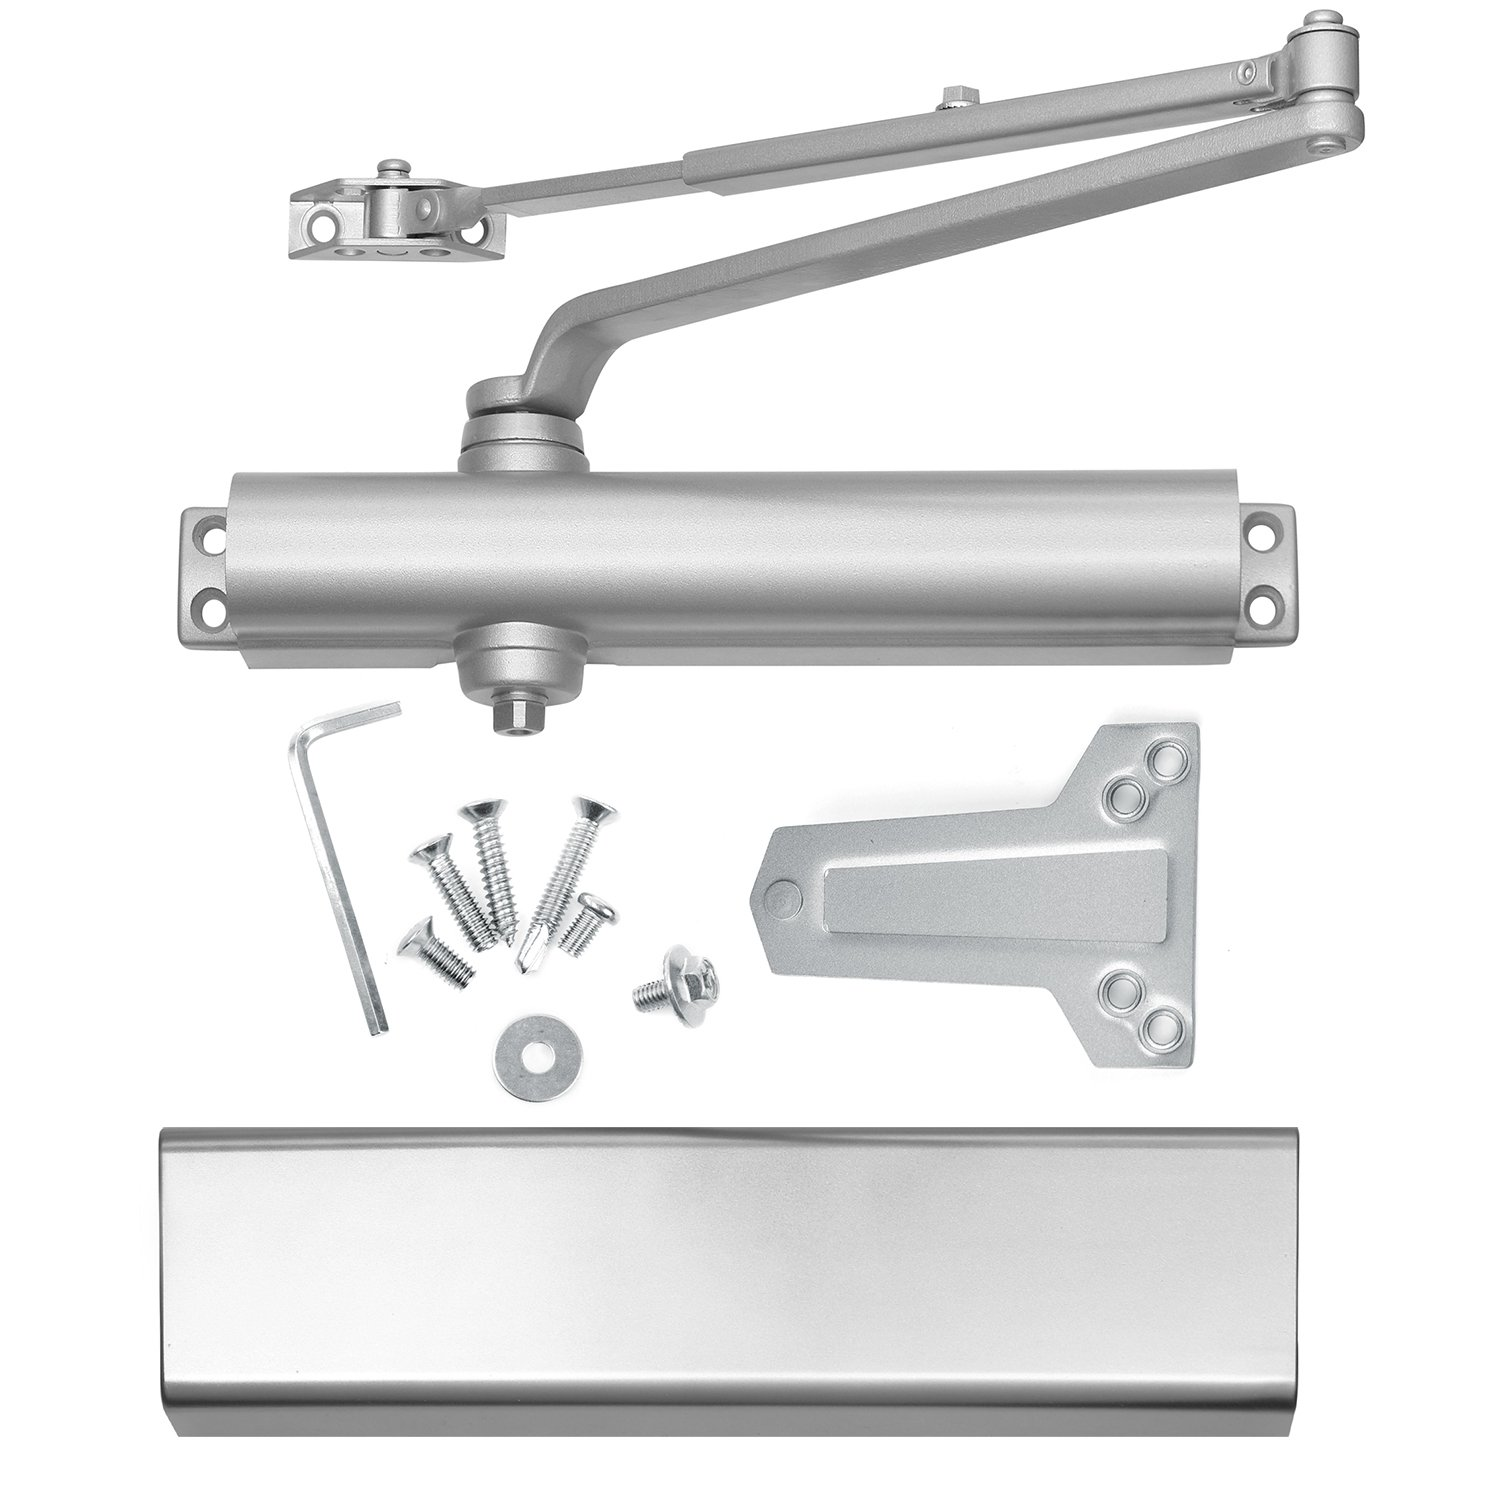 Heavy Duty Grade 1 Cast Aluminum Commercial Door Closer, Lawrence Hardware LH816 for high-traffic entrances/doorways/aluminum storefronts. Identical to Norton 8501 Footprint, & comparable to LCN 1461